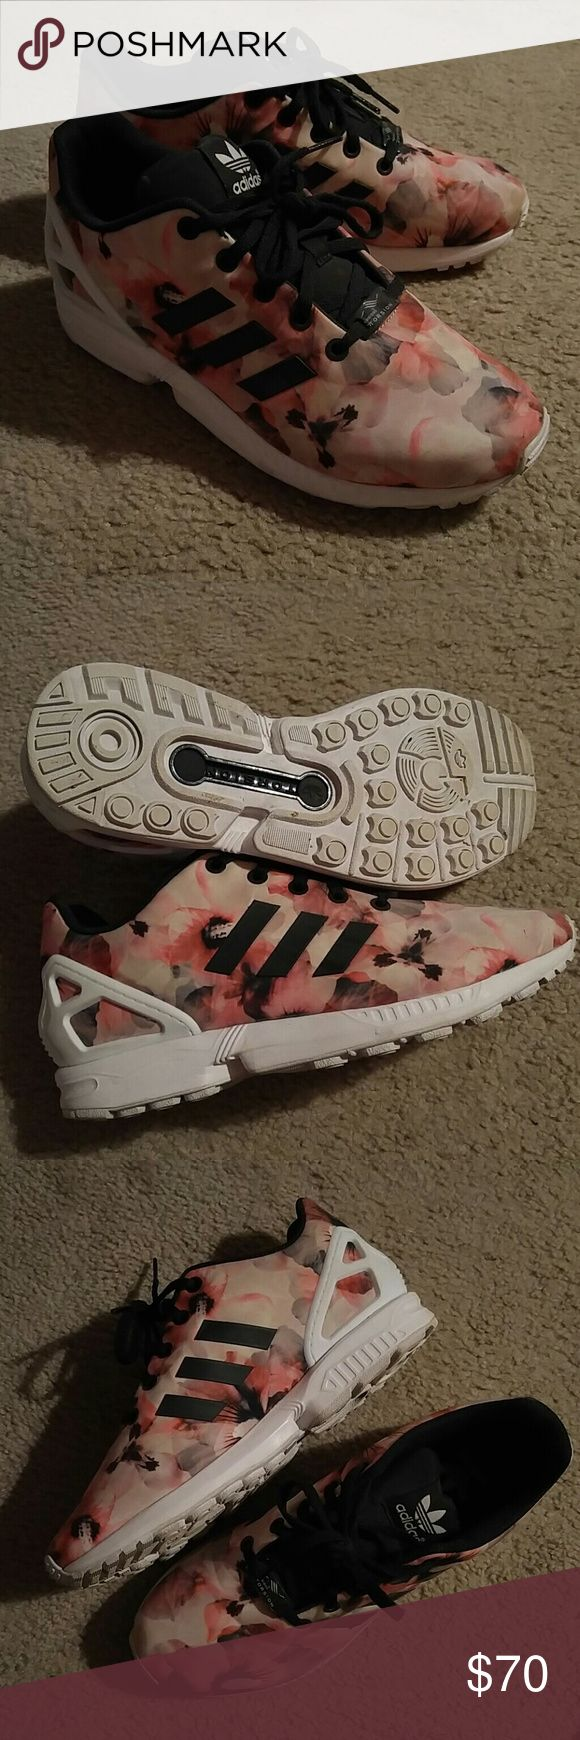 Adidas ZX Flux Floral Worn once. Cleaning out my closet. They say US size 6 men's but are like true 8s. Please see picture. Adidas Shoes Sneakers